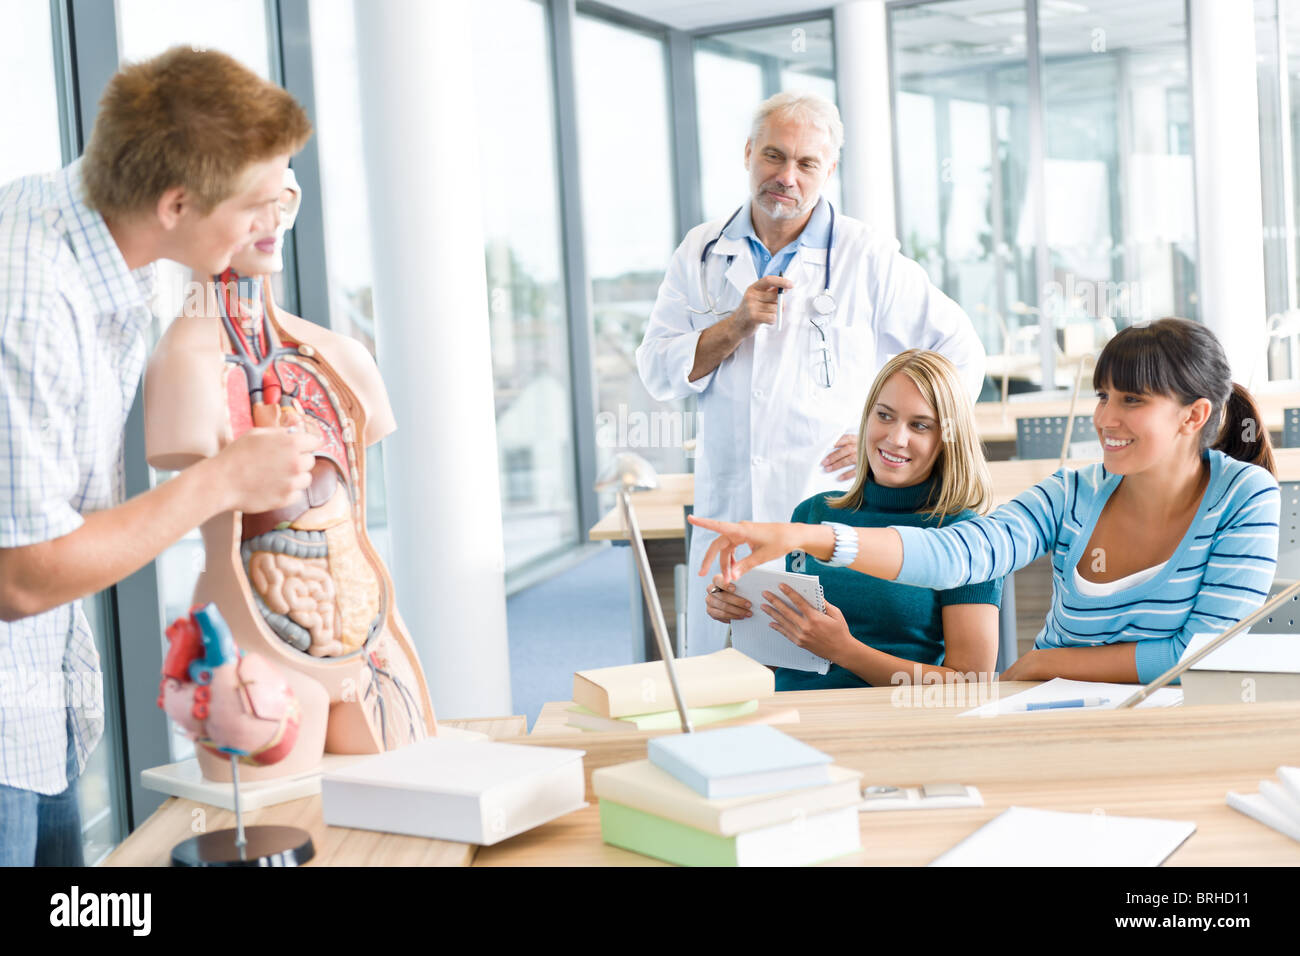 University - medical students with professor and human anatomical model in classroom - Stock Image